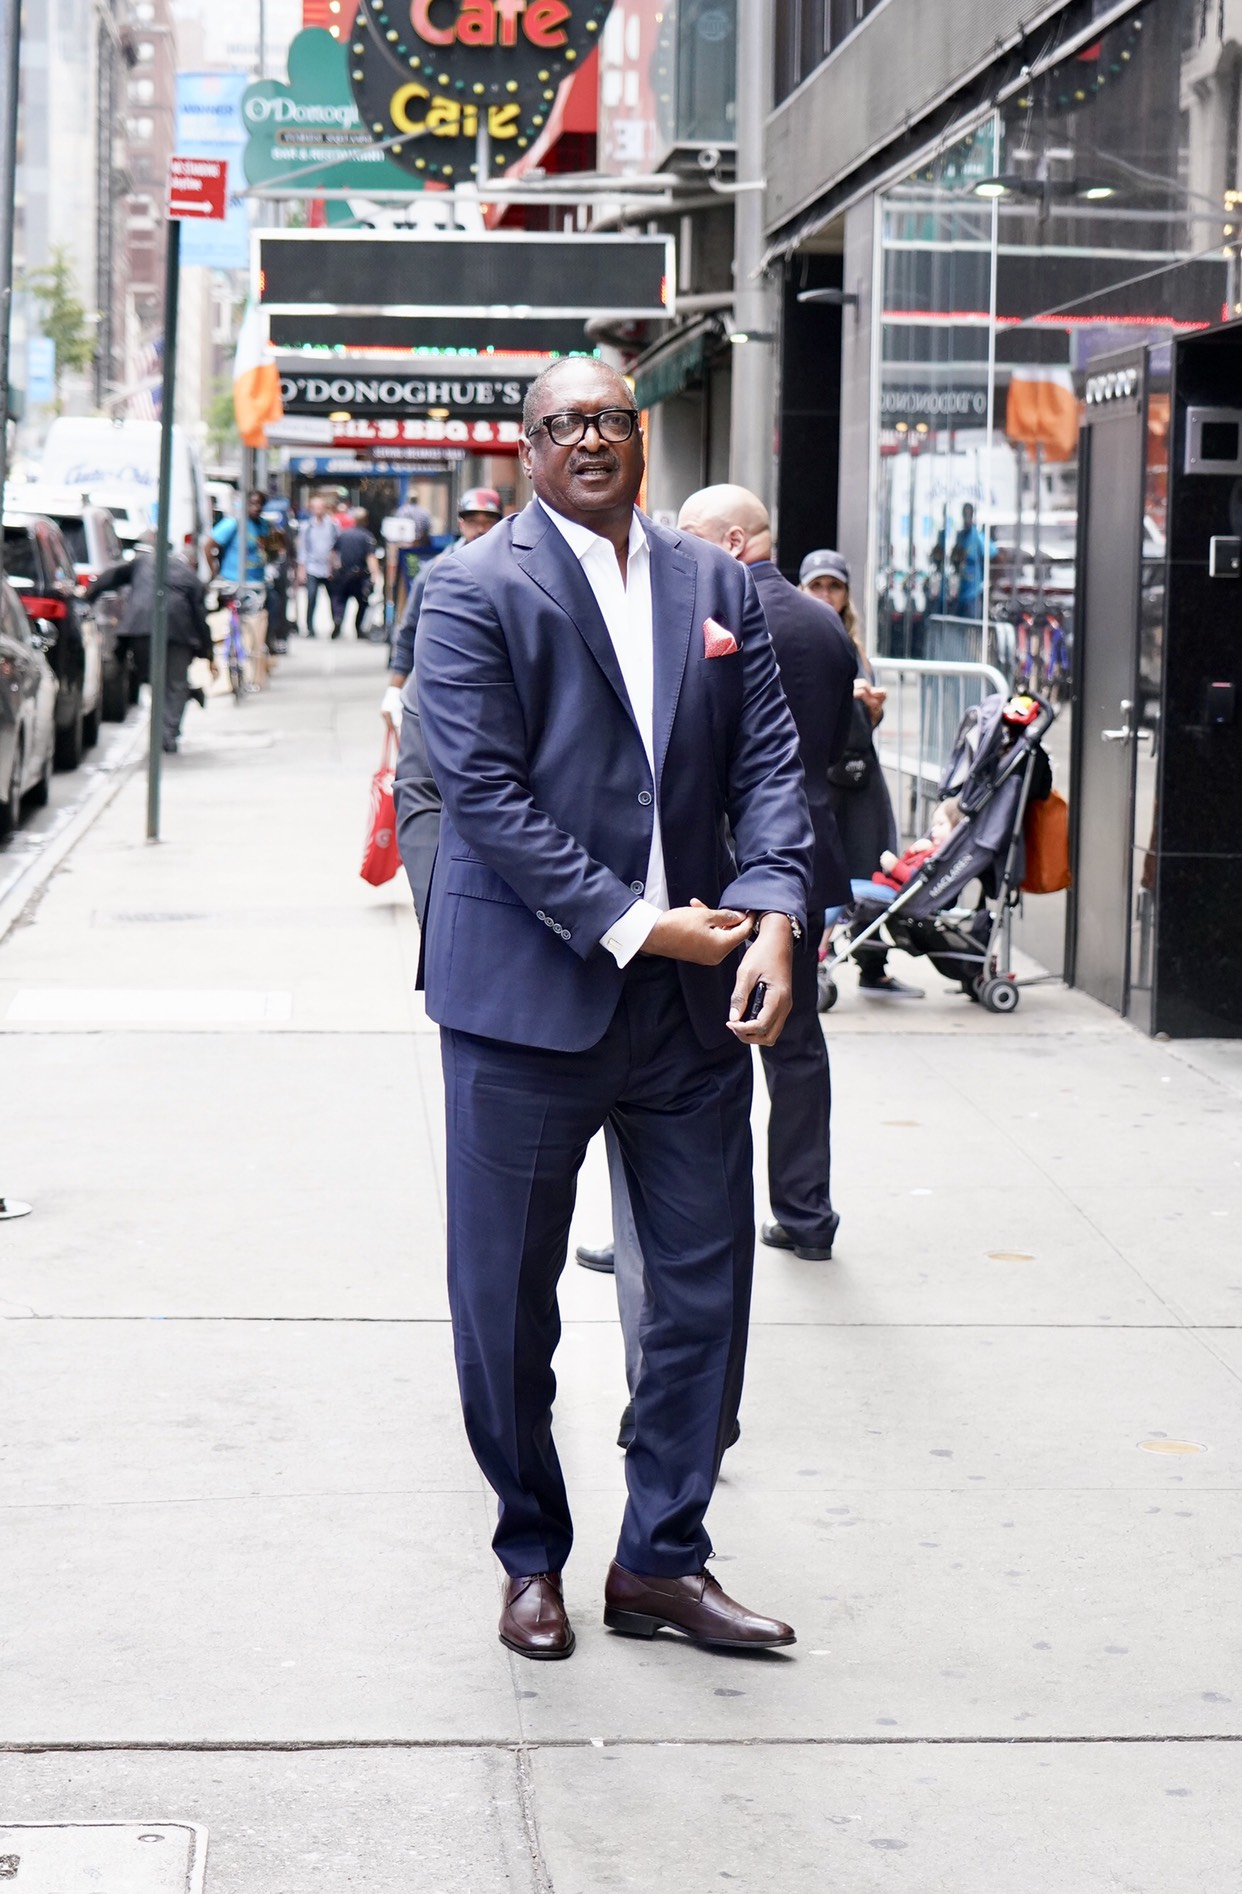 Mathew Knowles is seen arriving at Good Morning America. . 30 Sep 2019, Image: 474324453, License: Rights-managed, Restrictions: World Rights, Model Release: no, Credit line: Joe Russo / MEGA / Mega Agency / Profimedia